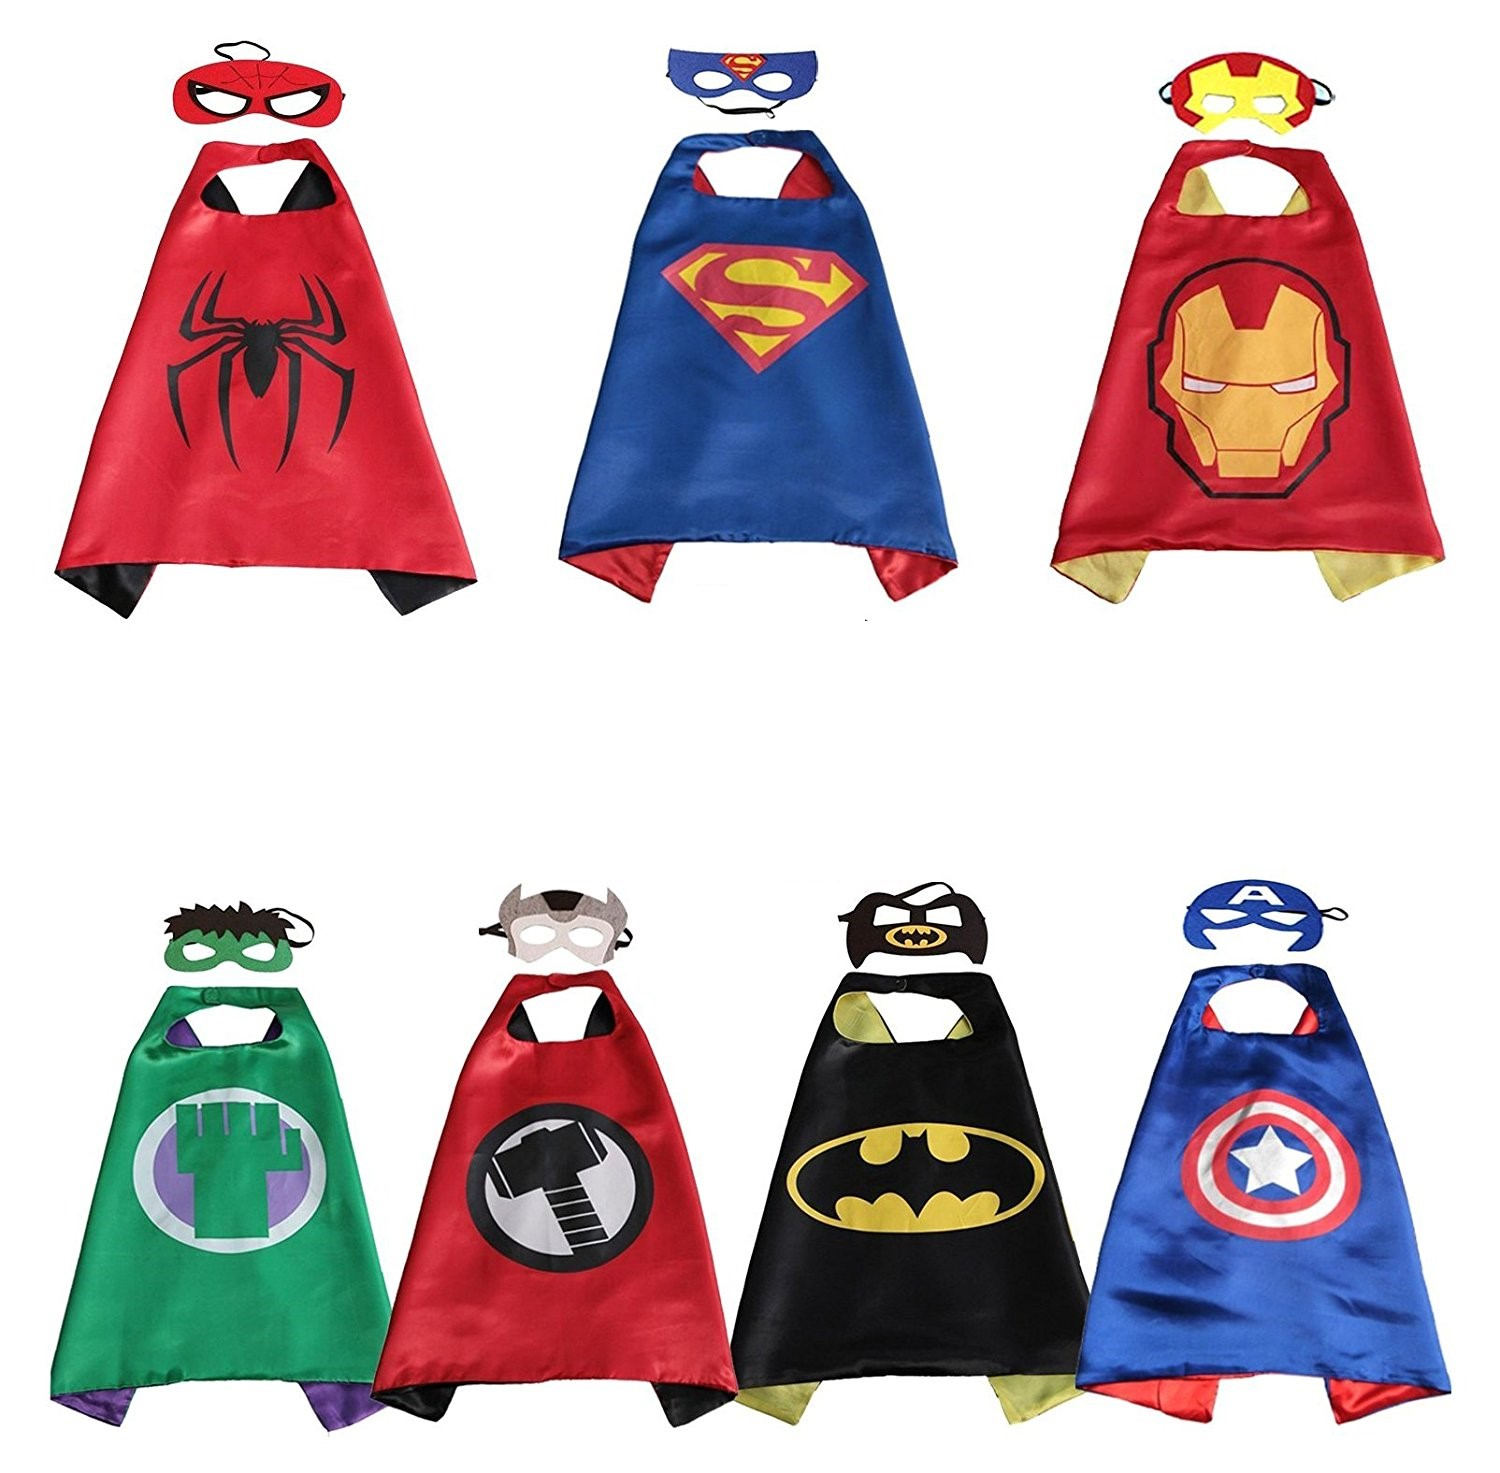 Avengers Superhero Seven Pack Cape And Mask Set Batman Superman Spider-man Captain America Iron-Man Thor Hulk